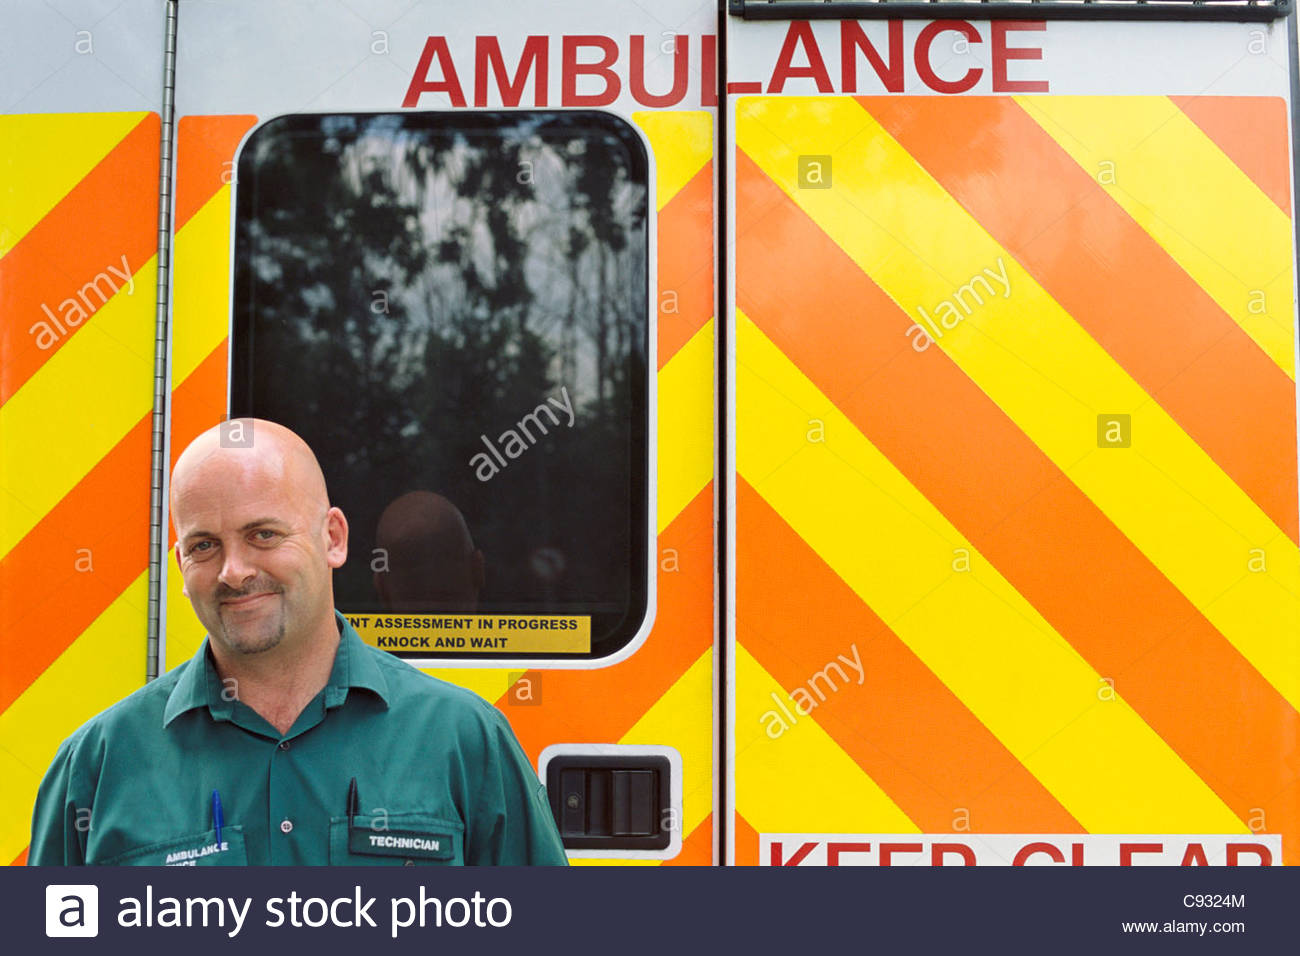 Portrait of smiling paramedic in front of ambulance - Stock Image